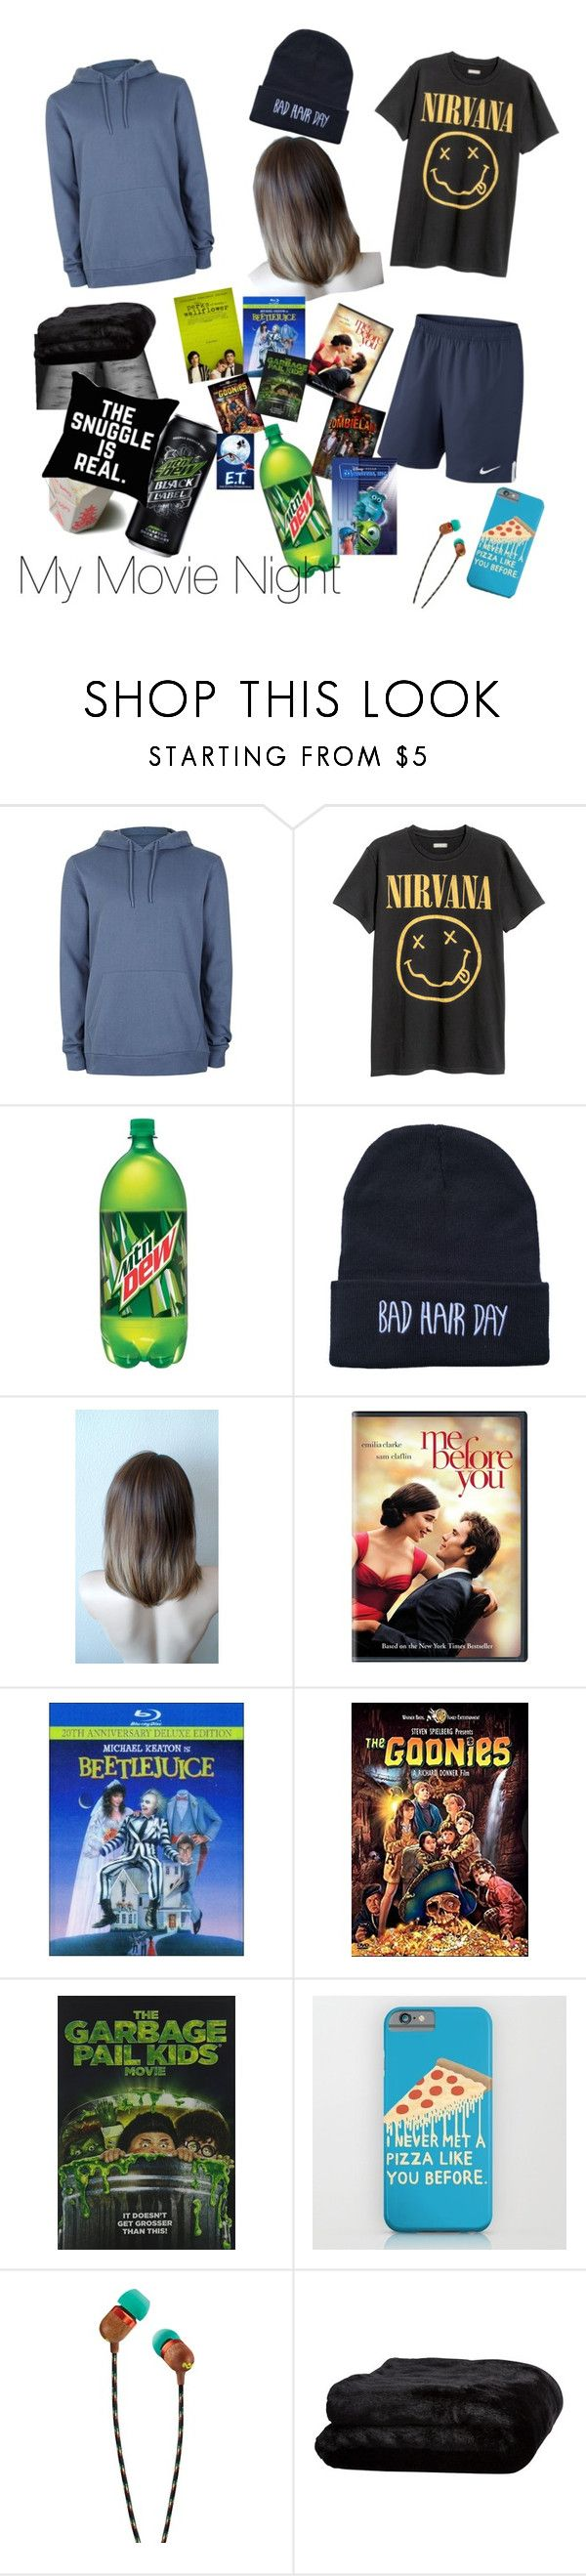 """My movie night outfit"" by mountaindewqueen15 ❤ liked on Polyvore featuring Topman, NIKE, Coleman, INC International Concepts, The House of Marley and Olivier Desforges"